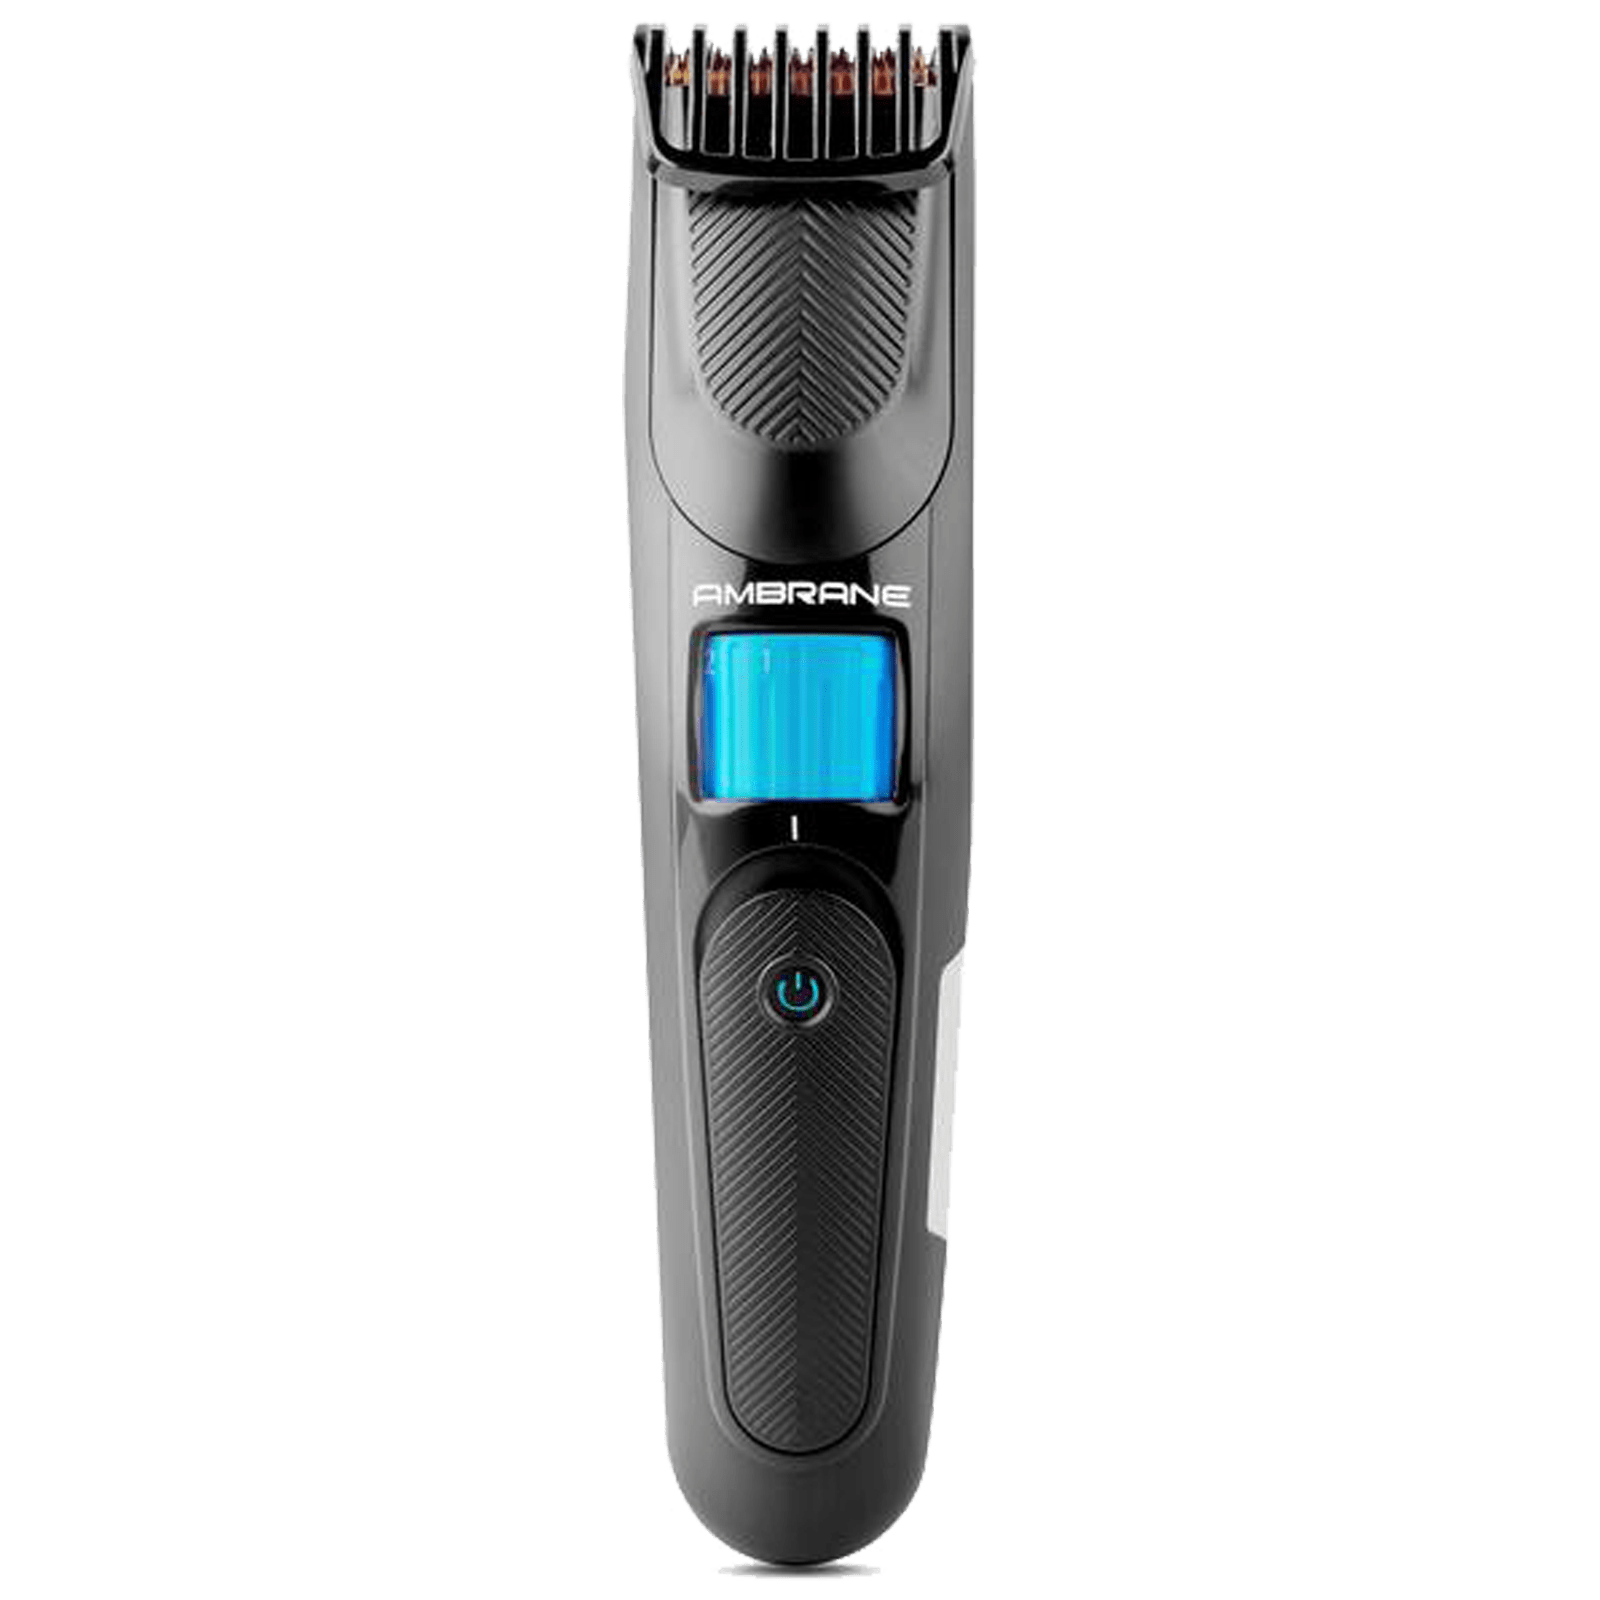 Ambrane Aura Stainless Steel Blades Cordless Trimmer (20 Length Settings, ATR-11, Black)